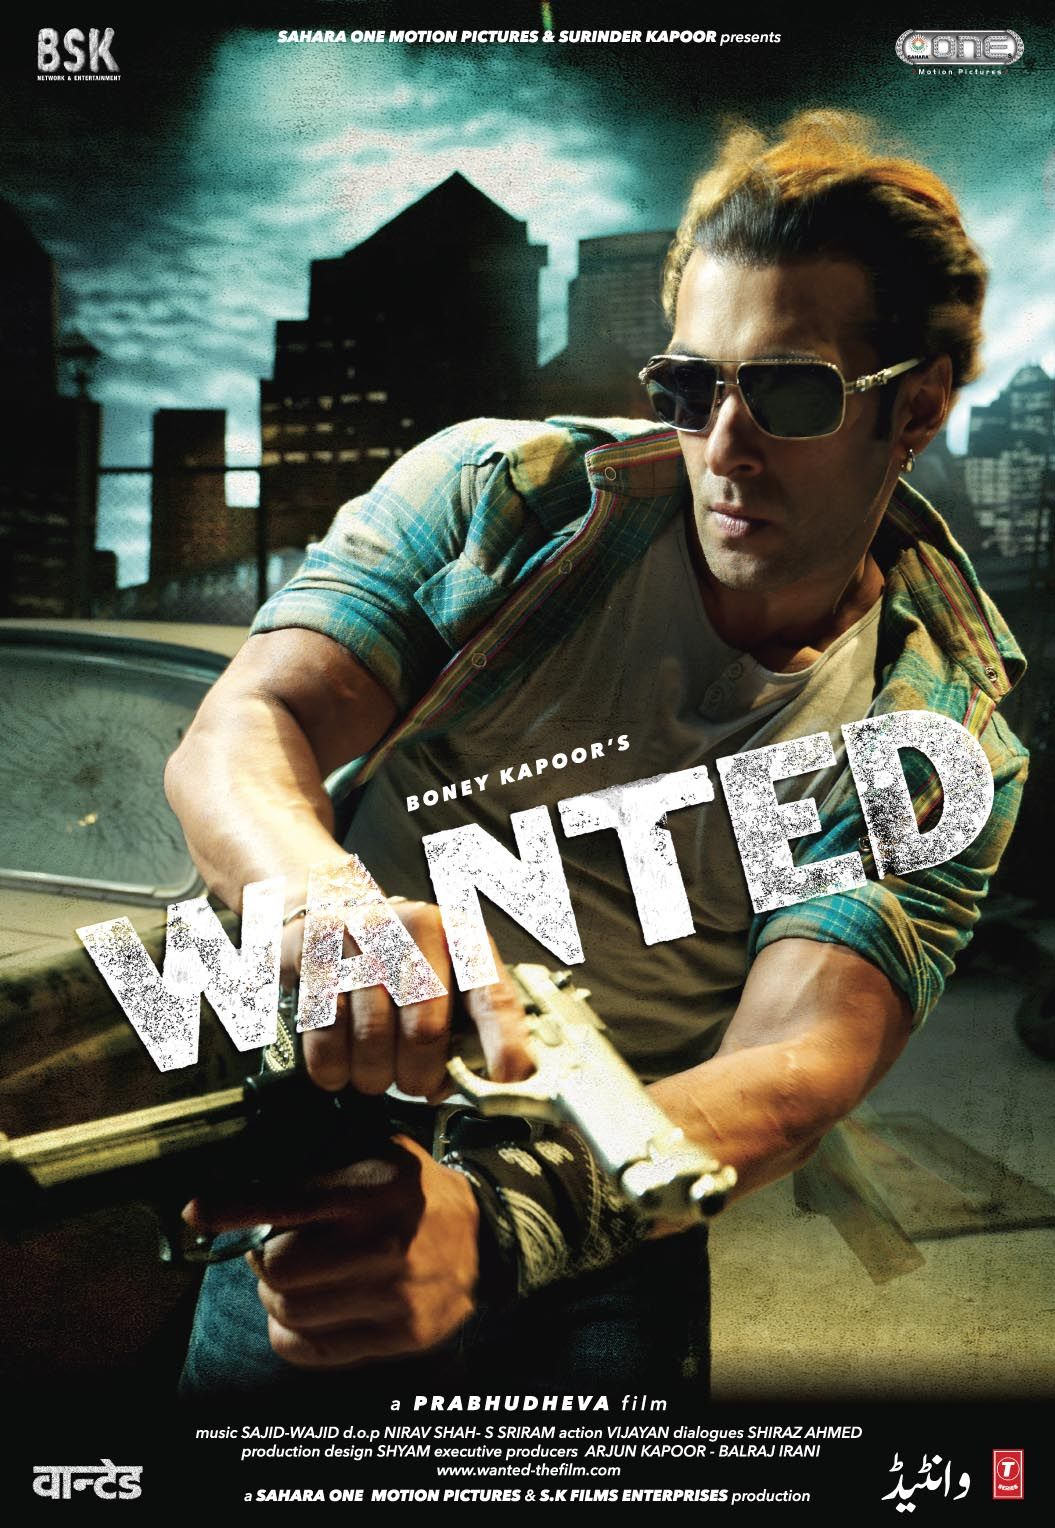 Wanted 2009 Salman Khan Hindi Movie Posters In 2019 Full